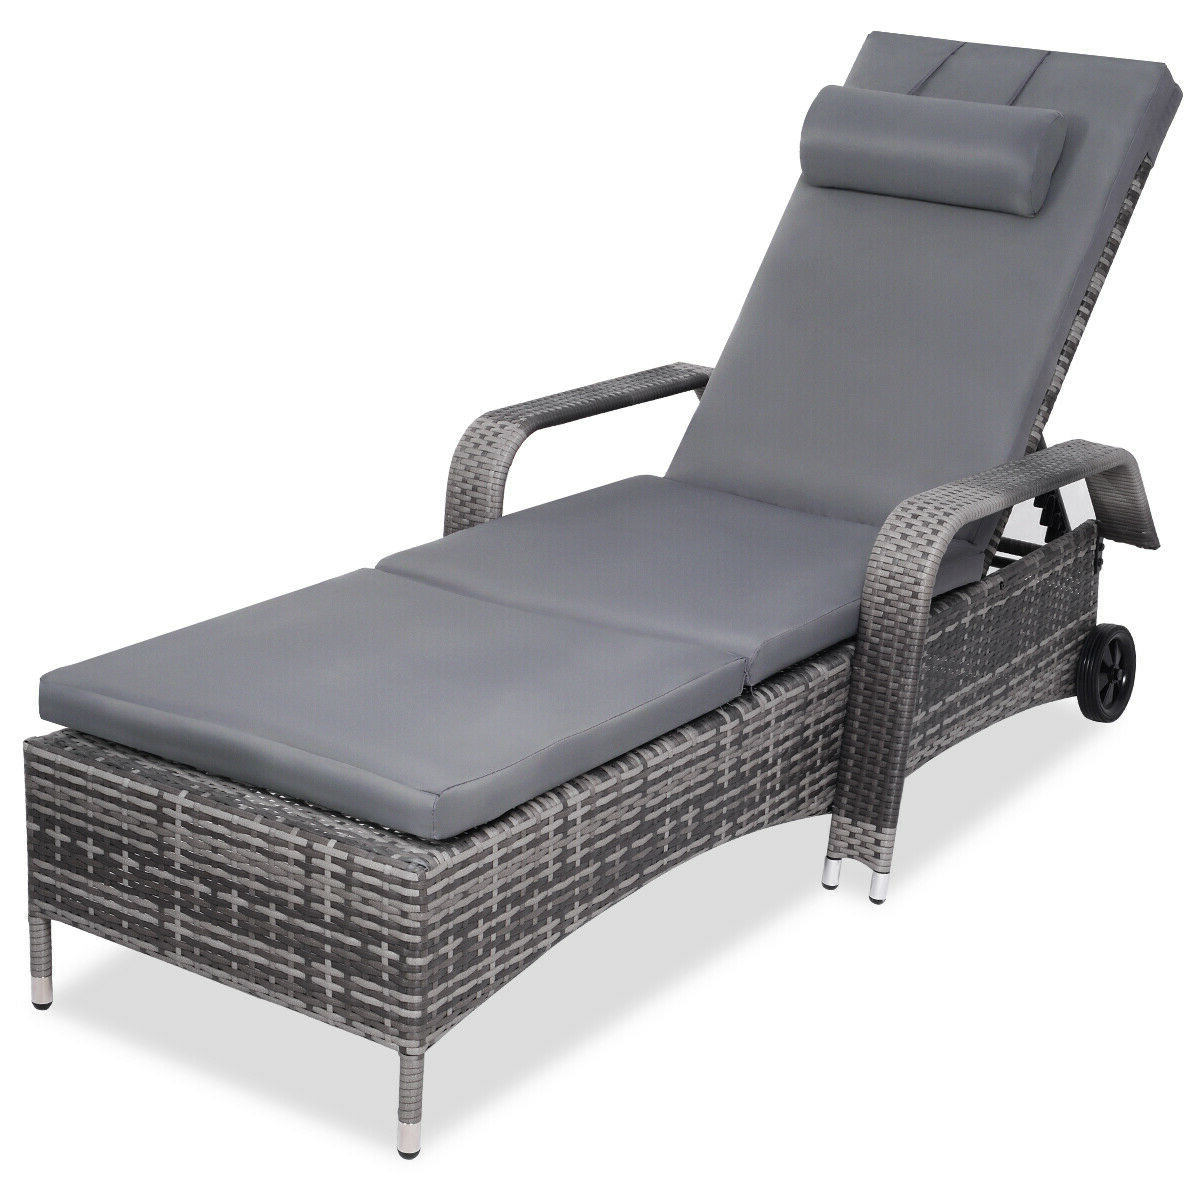 Outdoor Cart Wheel Adjustable Chaise Lounge Chairs Intended For Well Liked Wicker Chaise Lounge Chair Adjustable Outdoor Patio Furniture Reclining  Wheels (View 13 of 25)